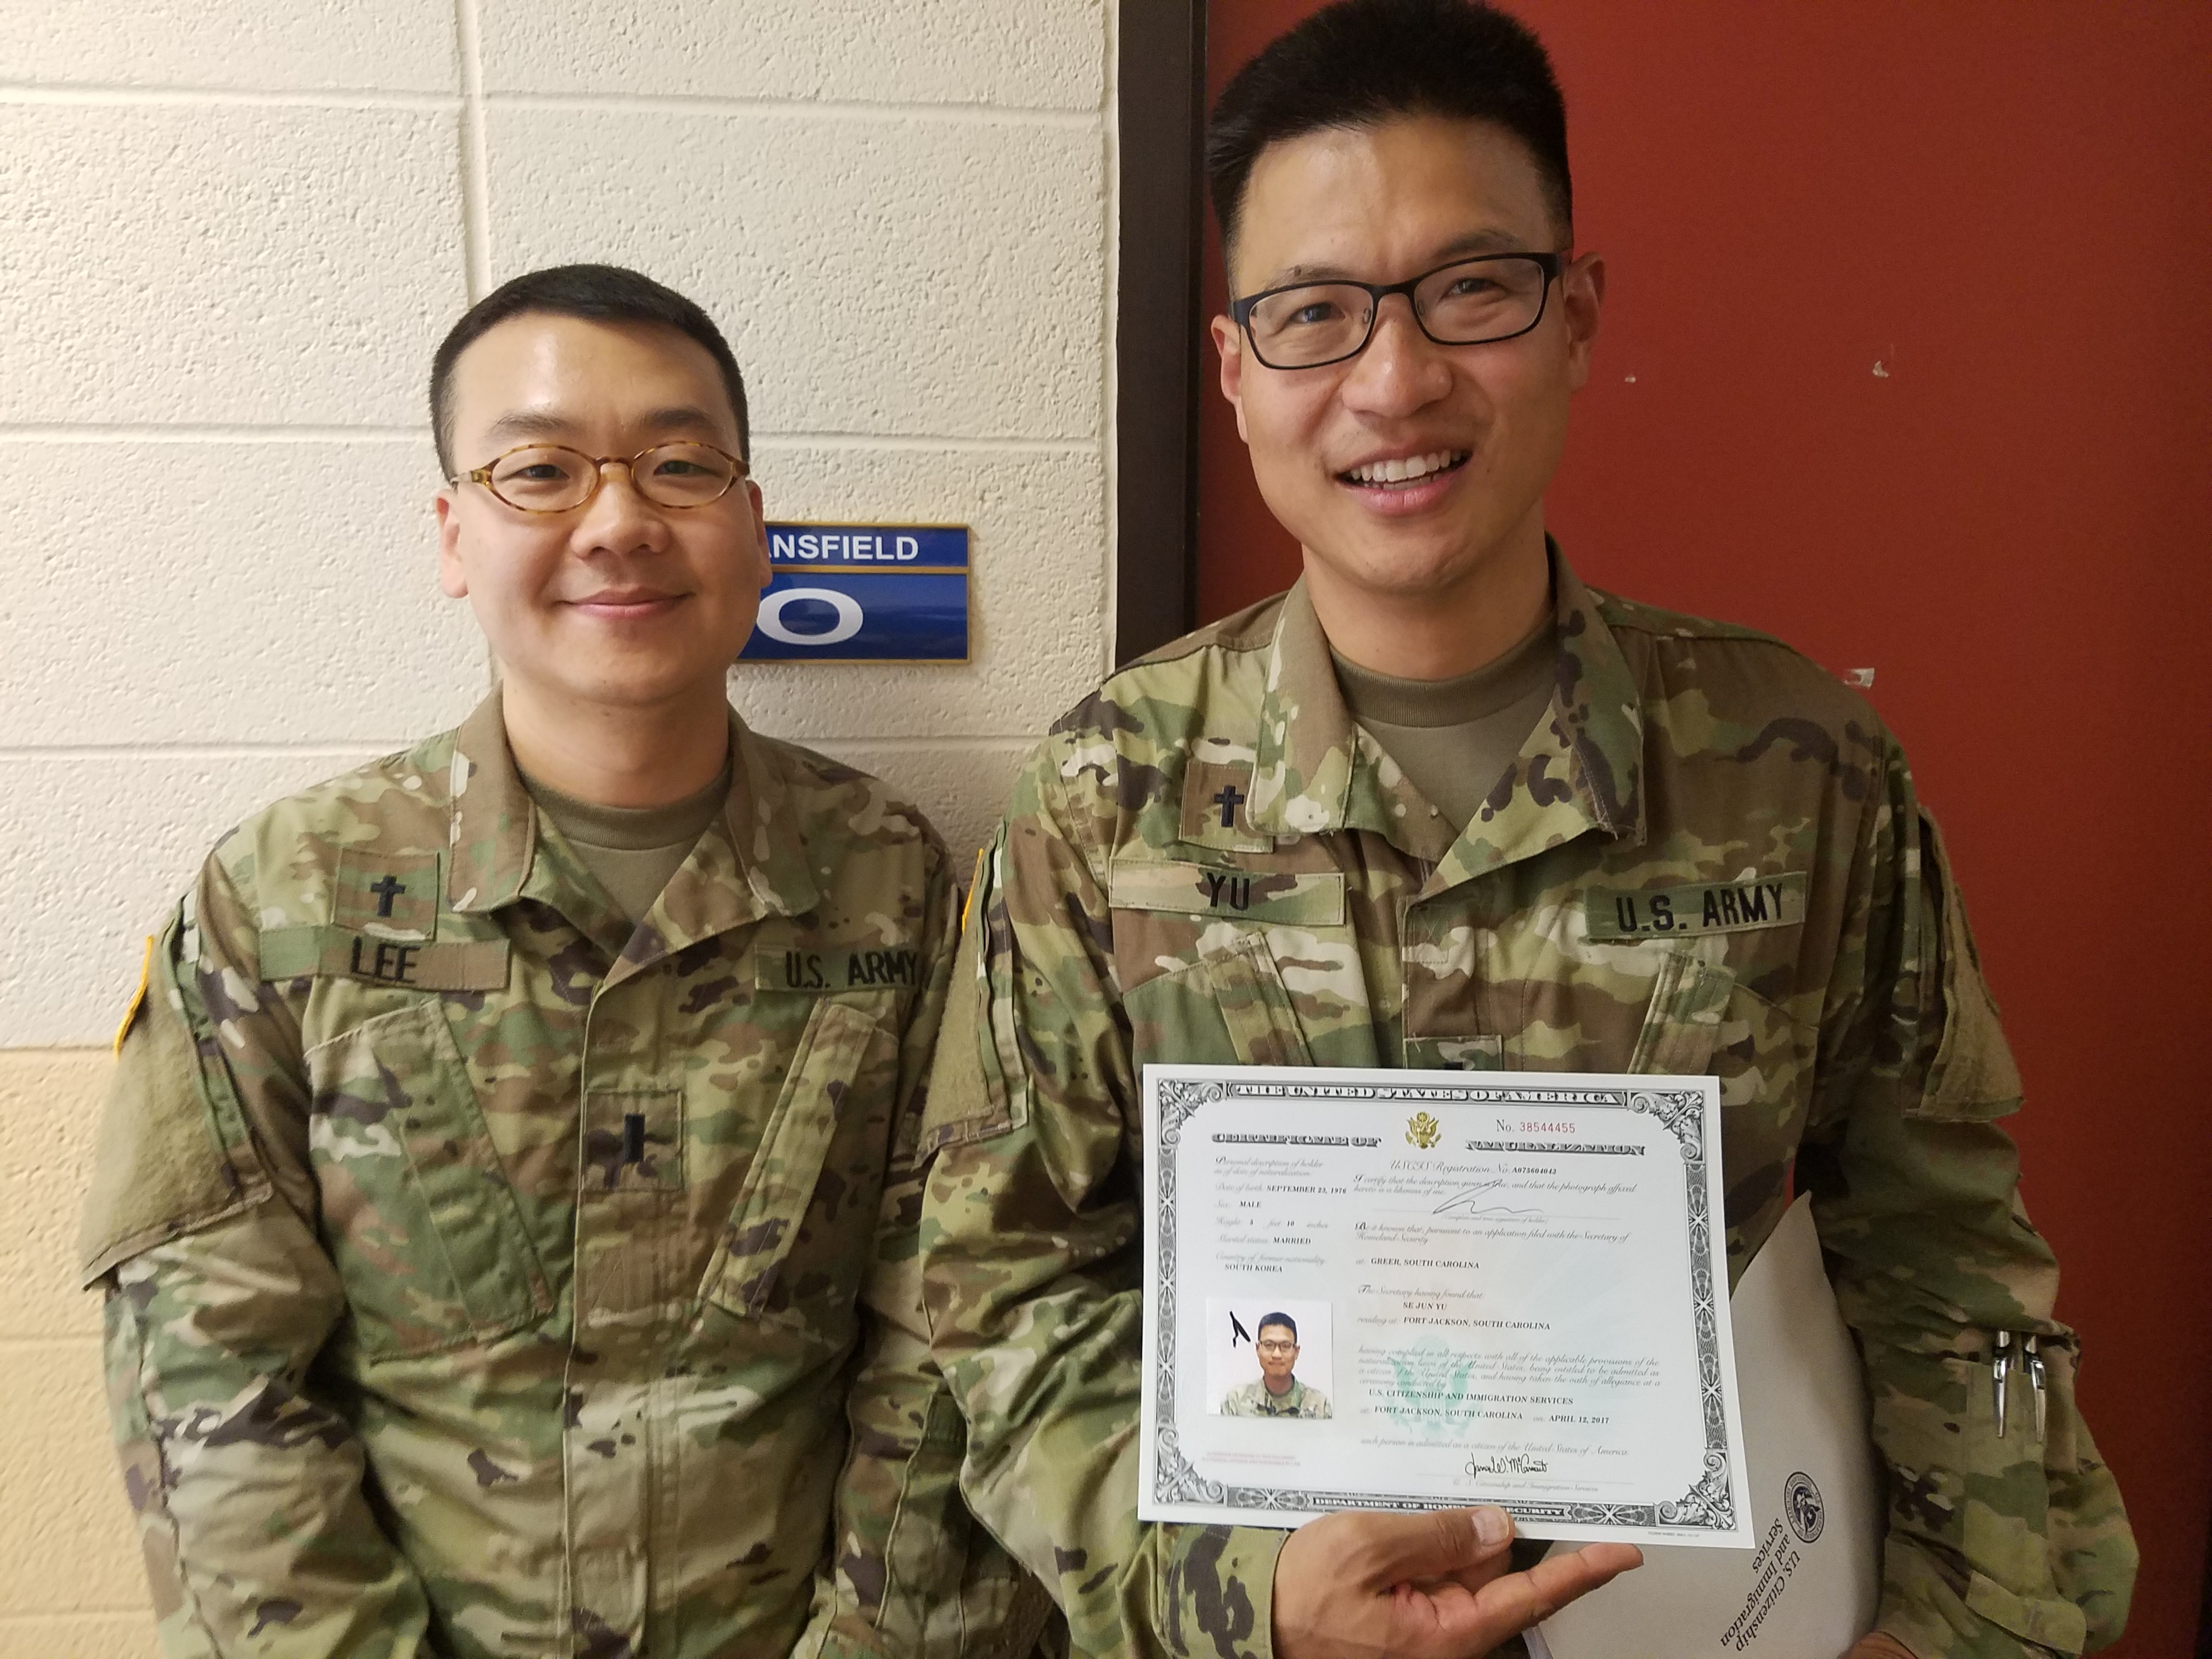 Evangelical church alliance international chaplain yu naturalized through the department of homeland security april 13 2017 with chaplain lee slated for naturalization the next week xflitez Images